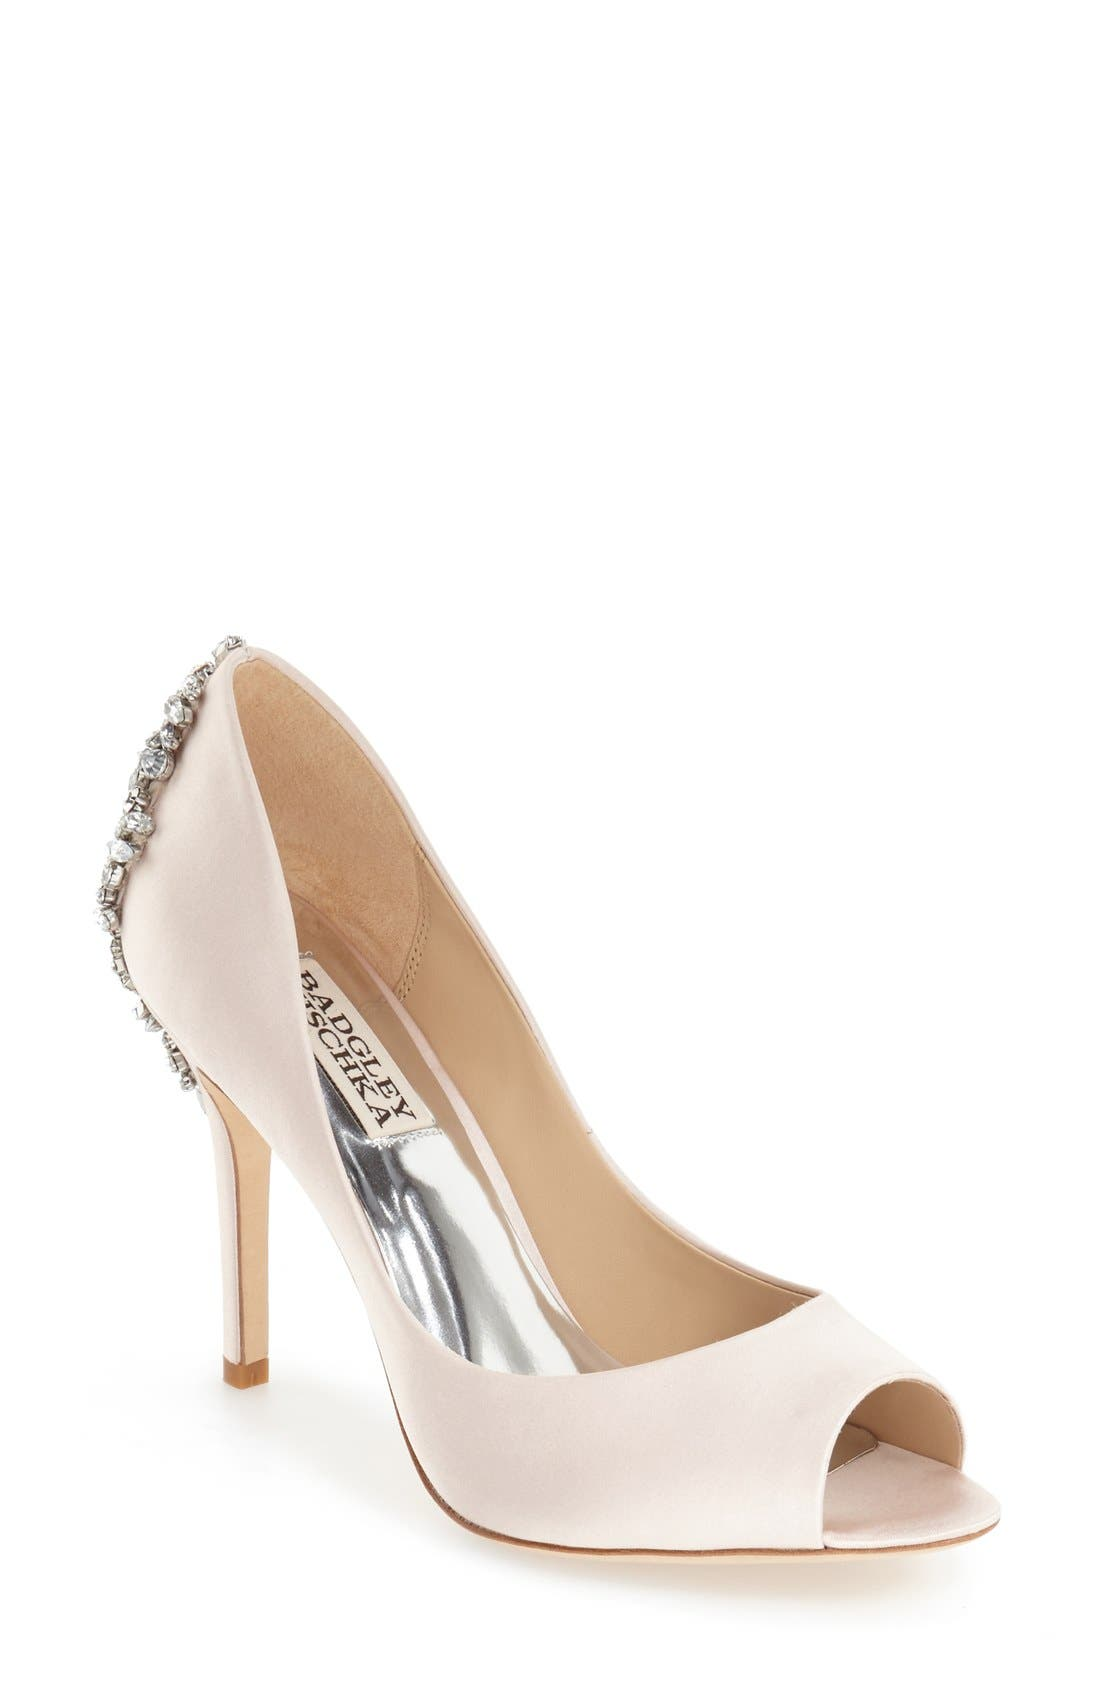 Alternate Image 1 Selected - Badgley Mischka 'Nilla' Peep Toe Pump (Women)